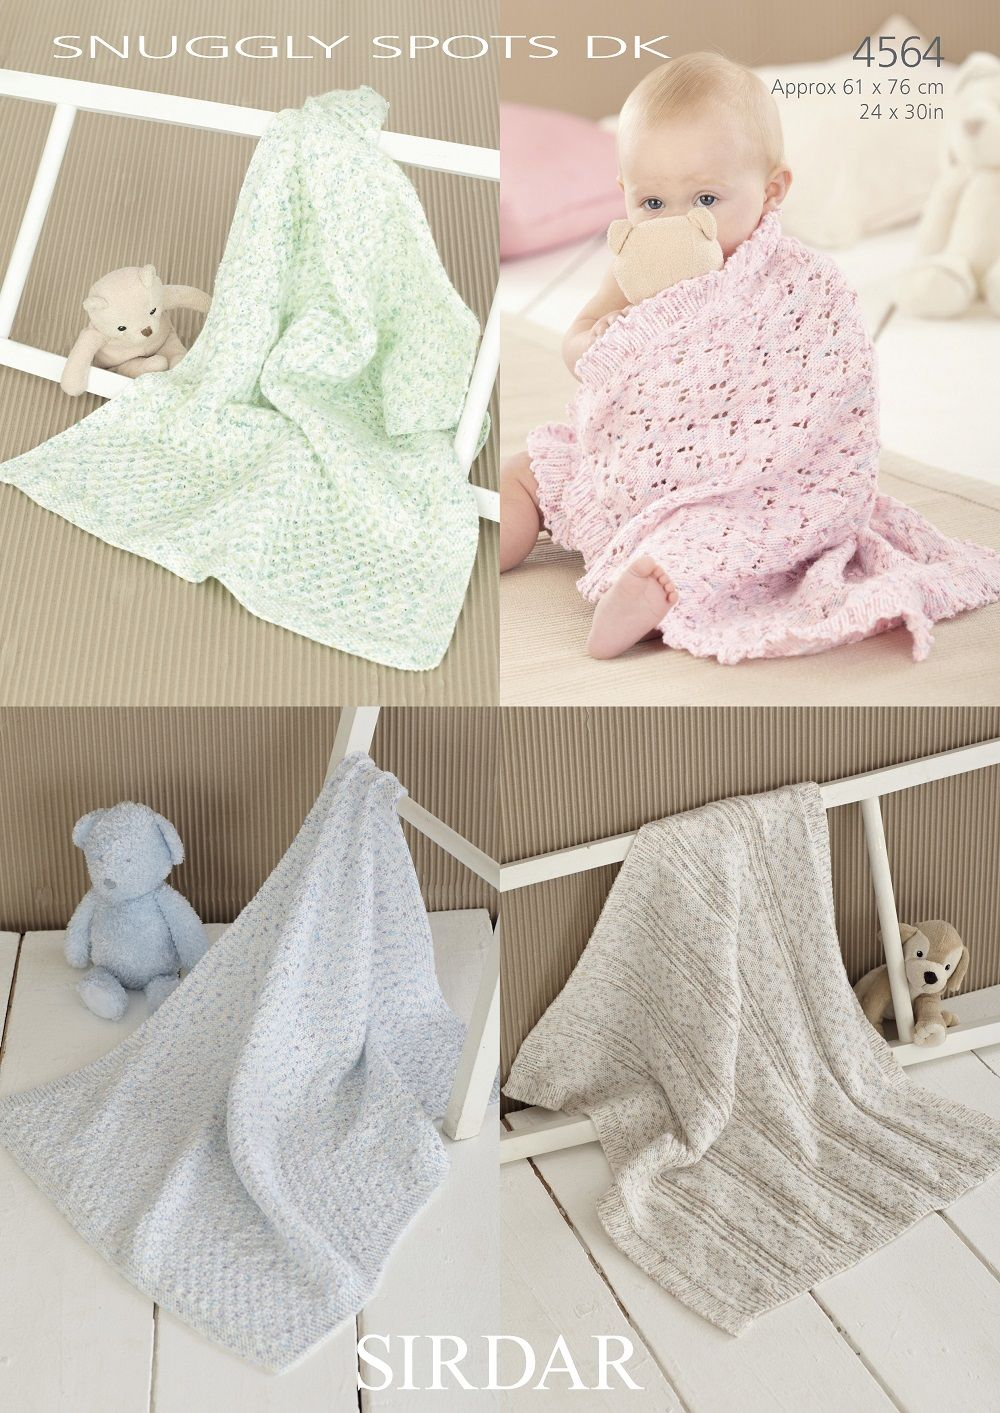 Sirdar Babies Blankets Knitting Patterns In Snuggly Spots Dk 4564p Pdf